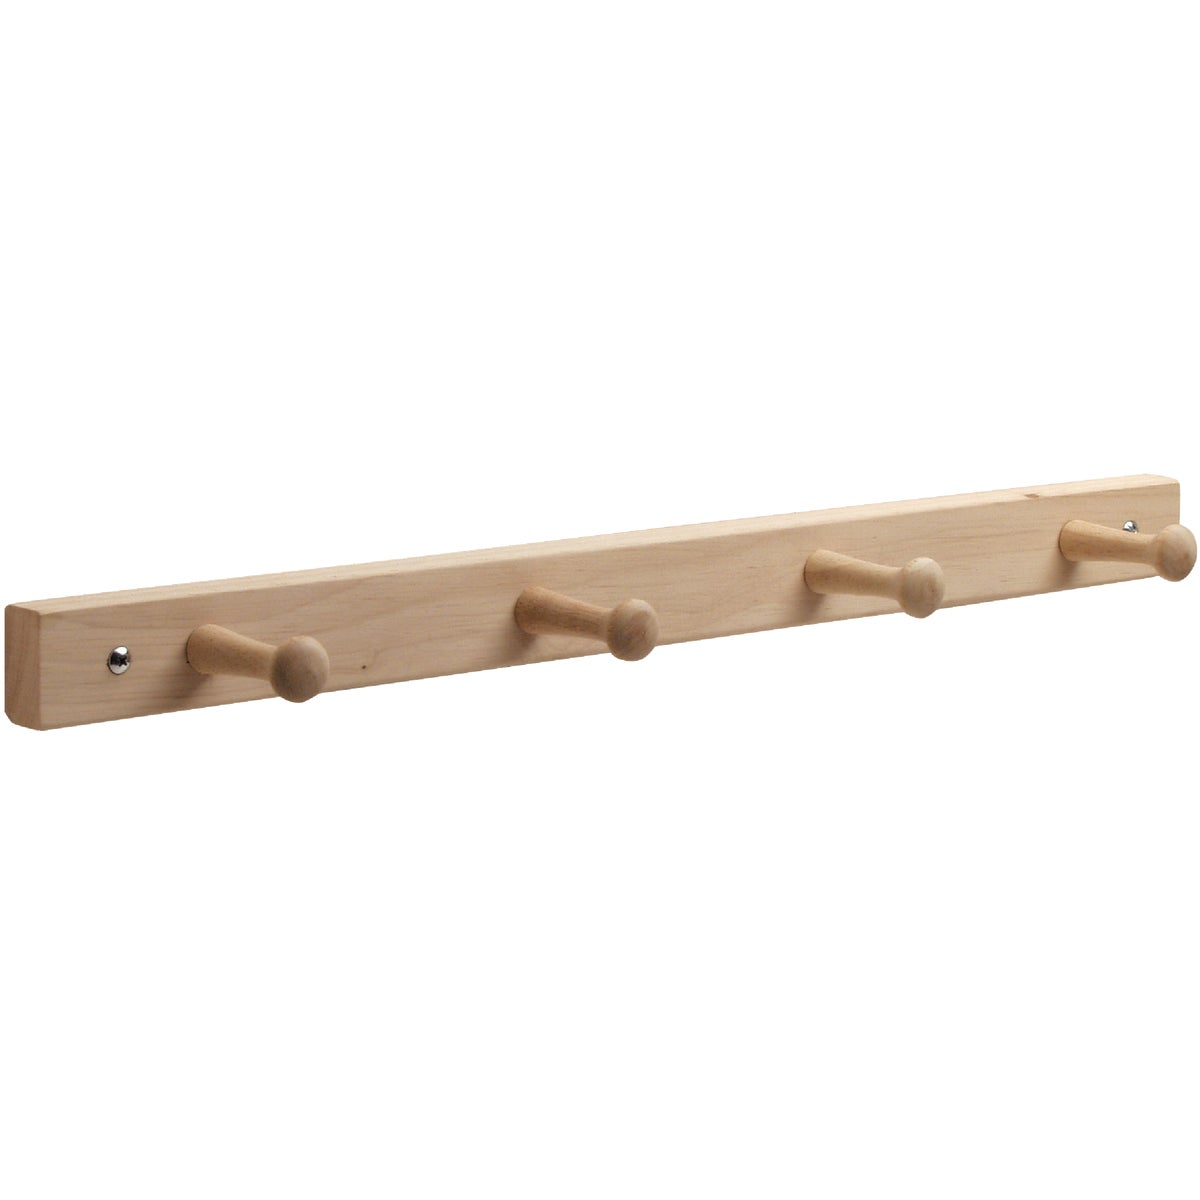 4 PEG WOOD RACK - 91518 by Interdesign Inc